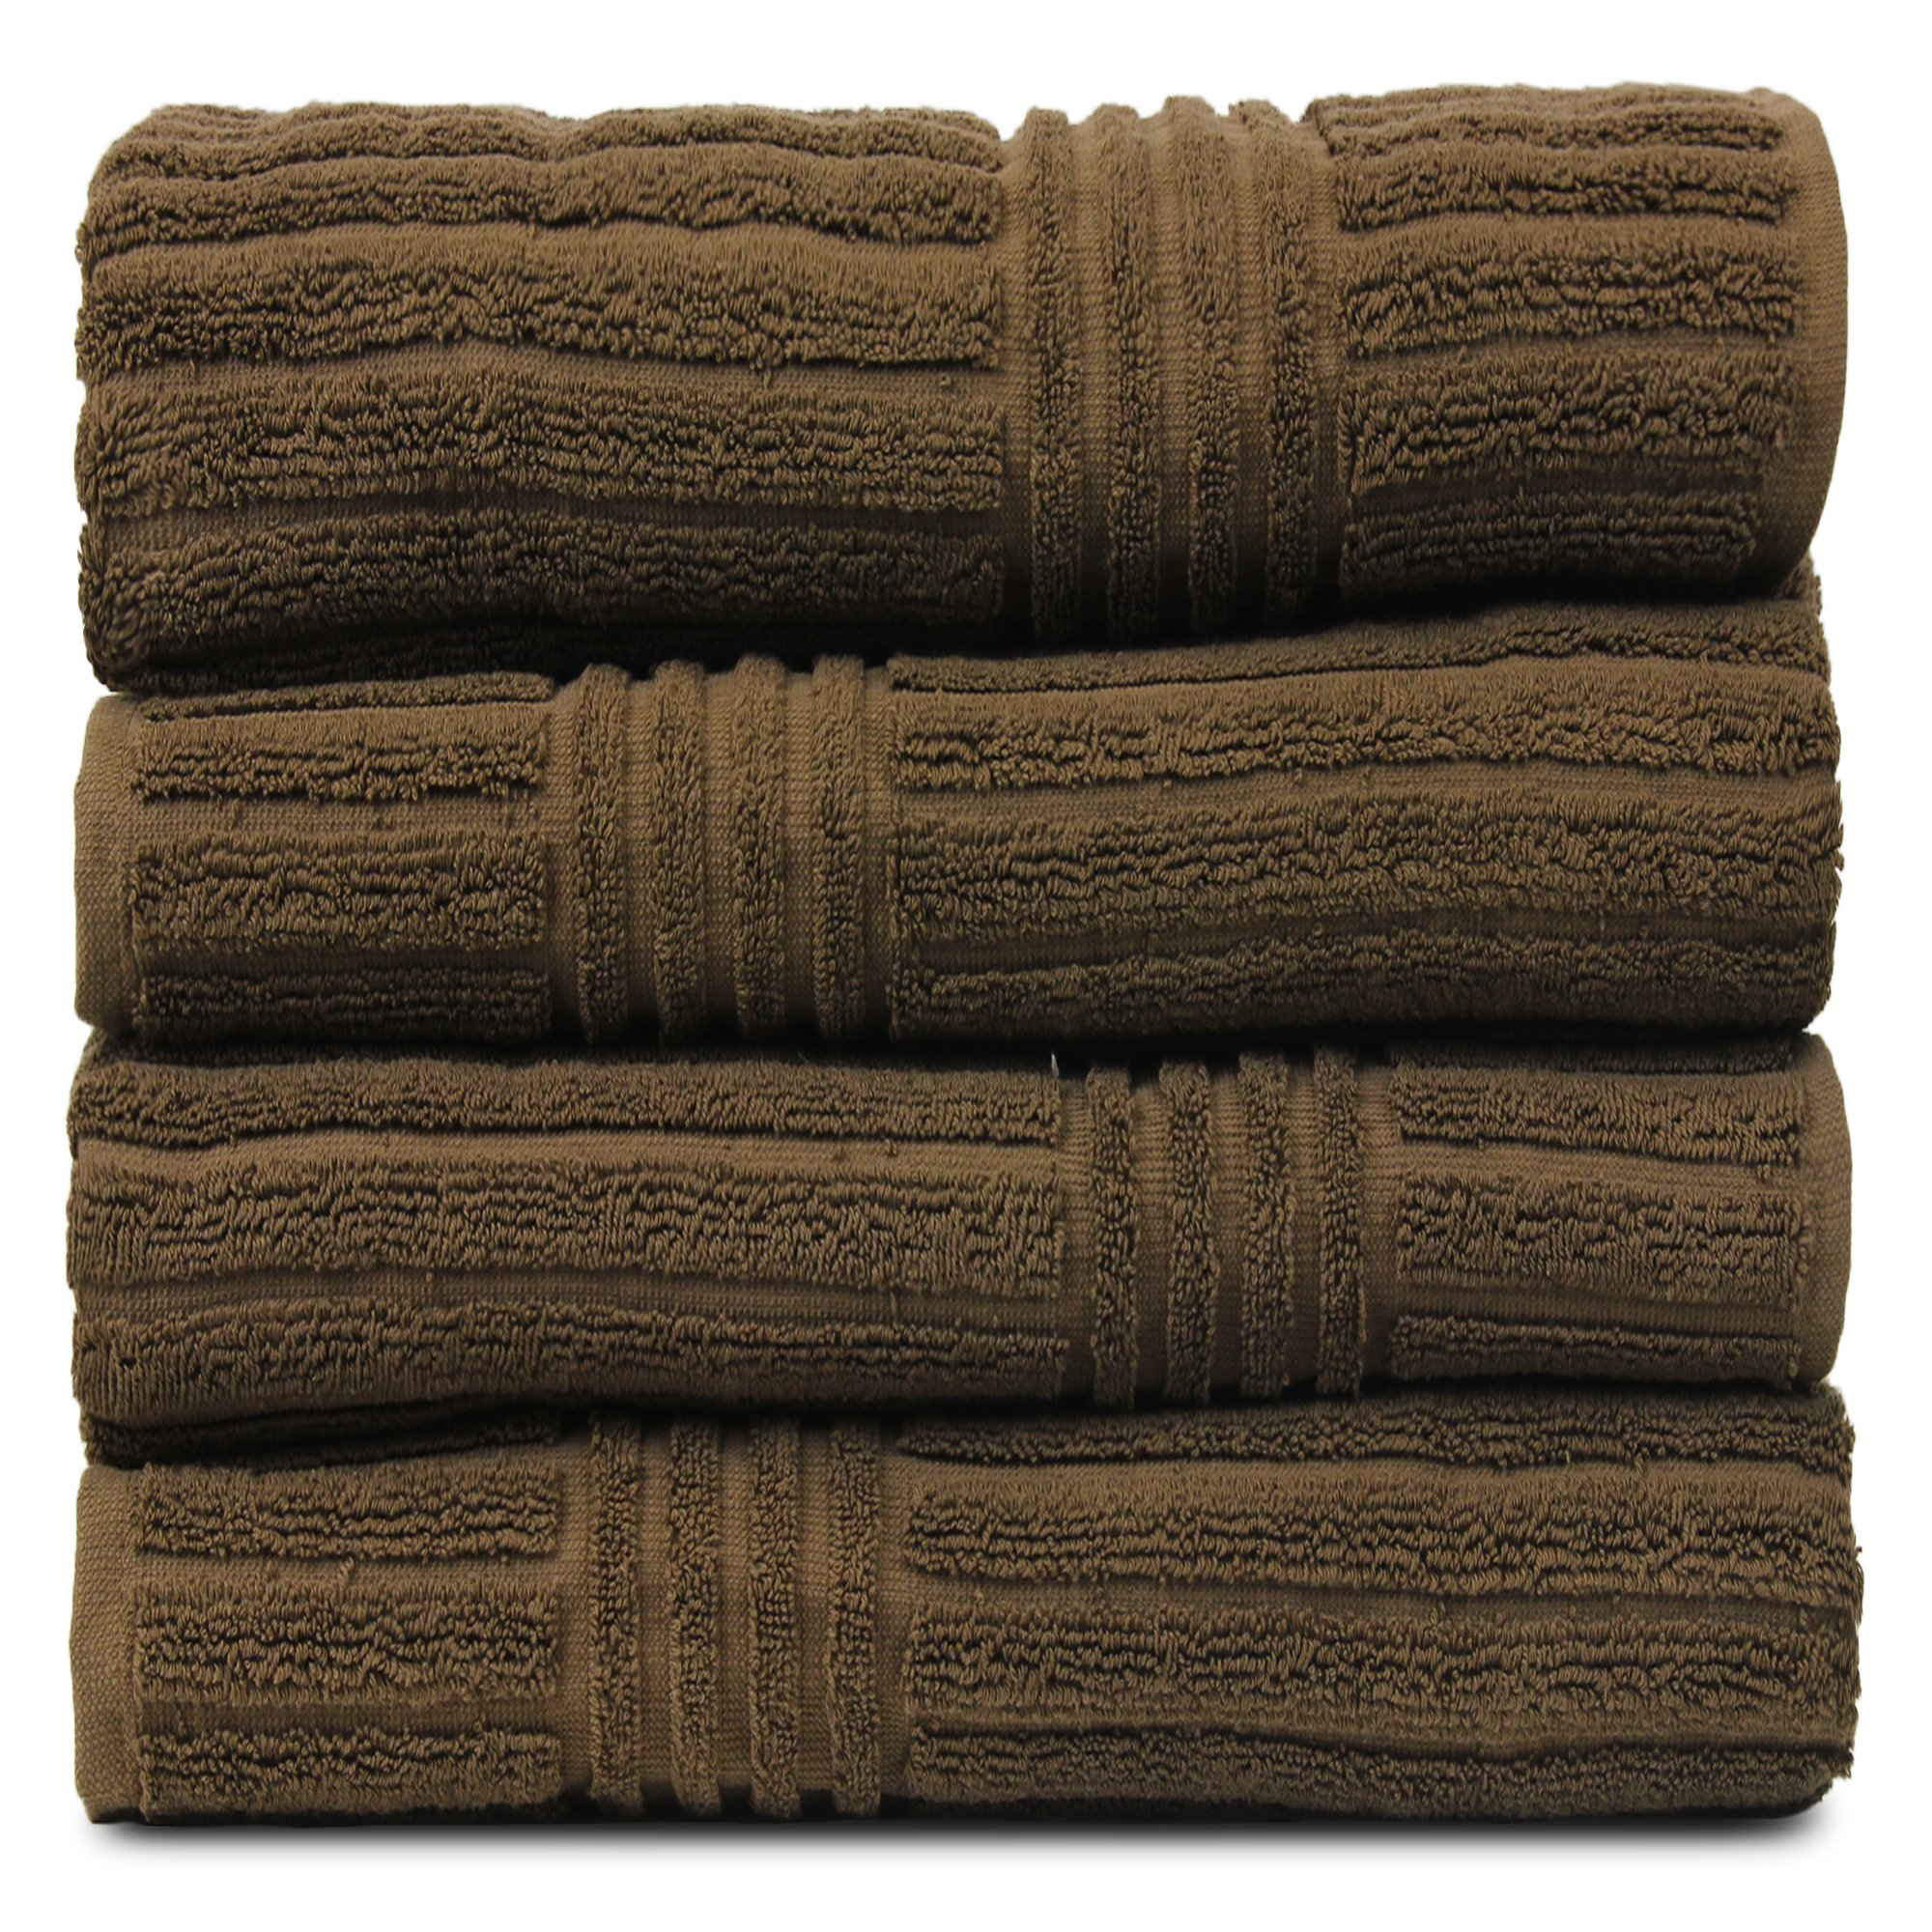 BC BARE COTTON Luxury Hotel & Spa Towel 100% Natural Turkish Cotton Ribbed Channel Pattern Bath (Set of 4), Cocoa